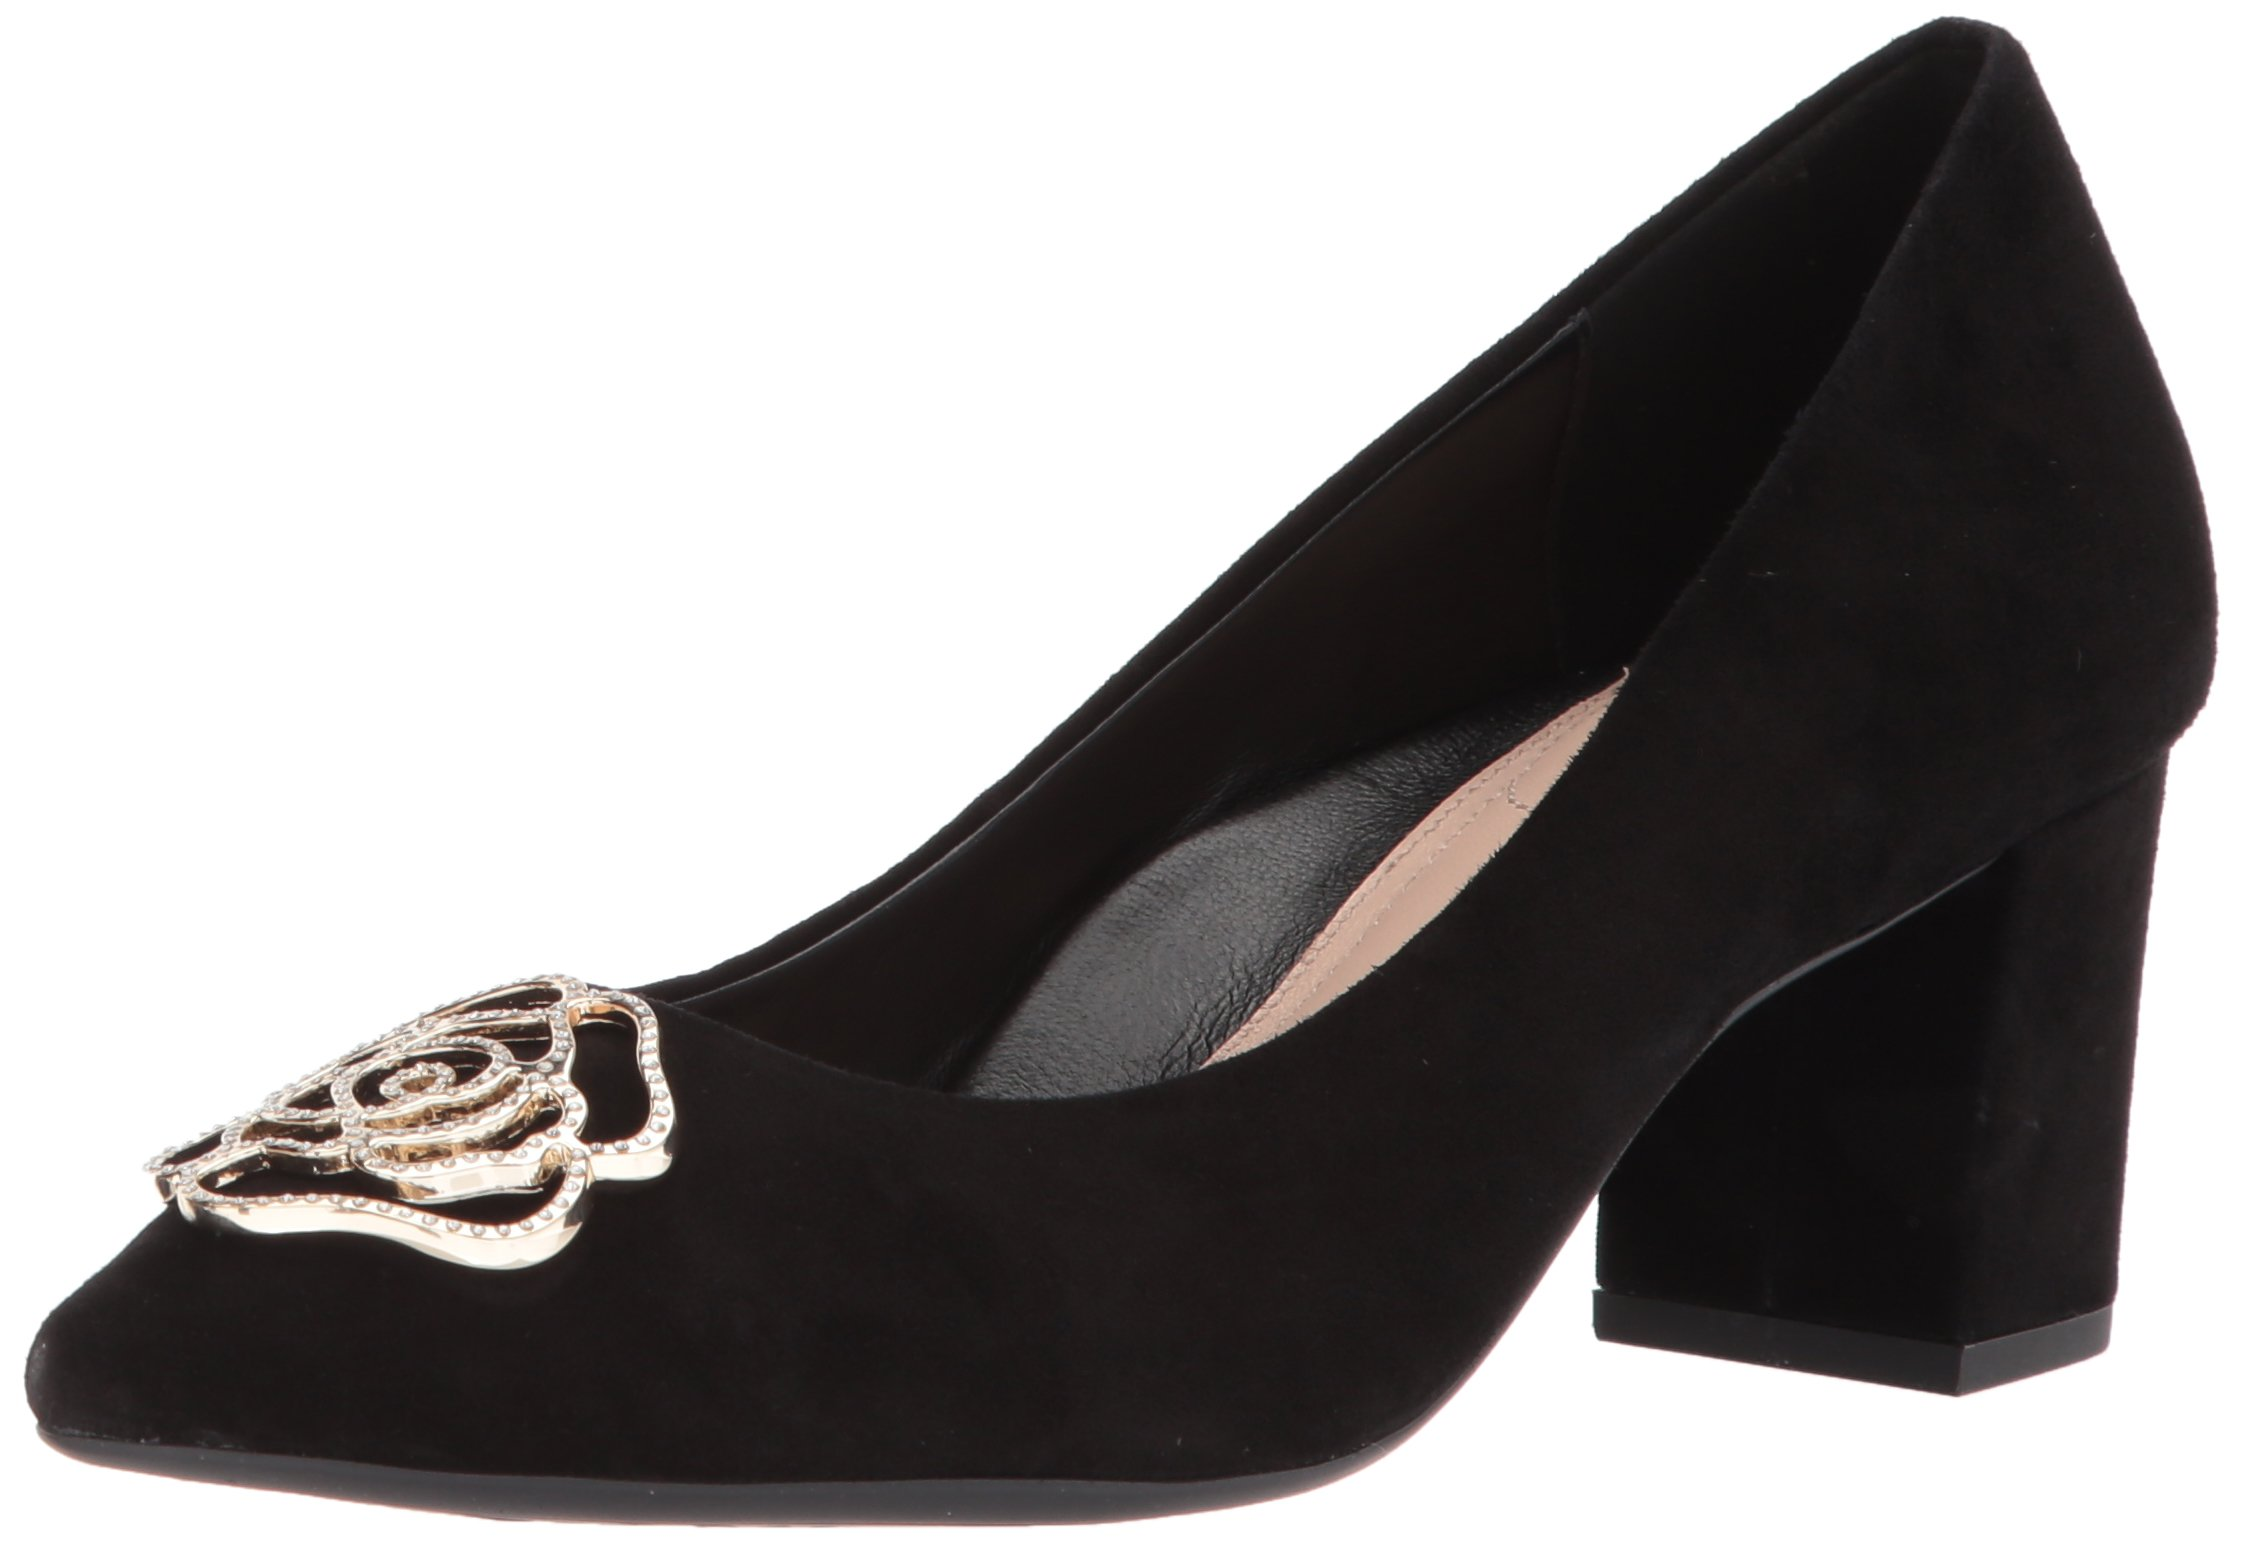 Taryn Rose Women's Maci Silky Suede Pump, Black, 8.5 M M US